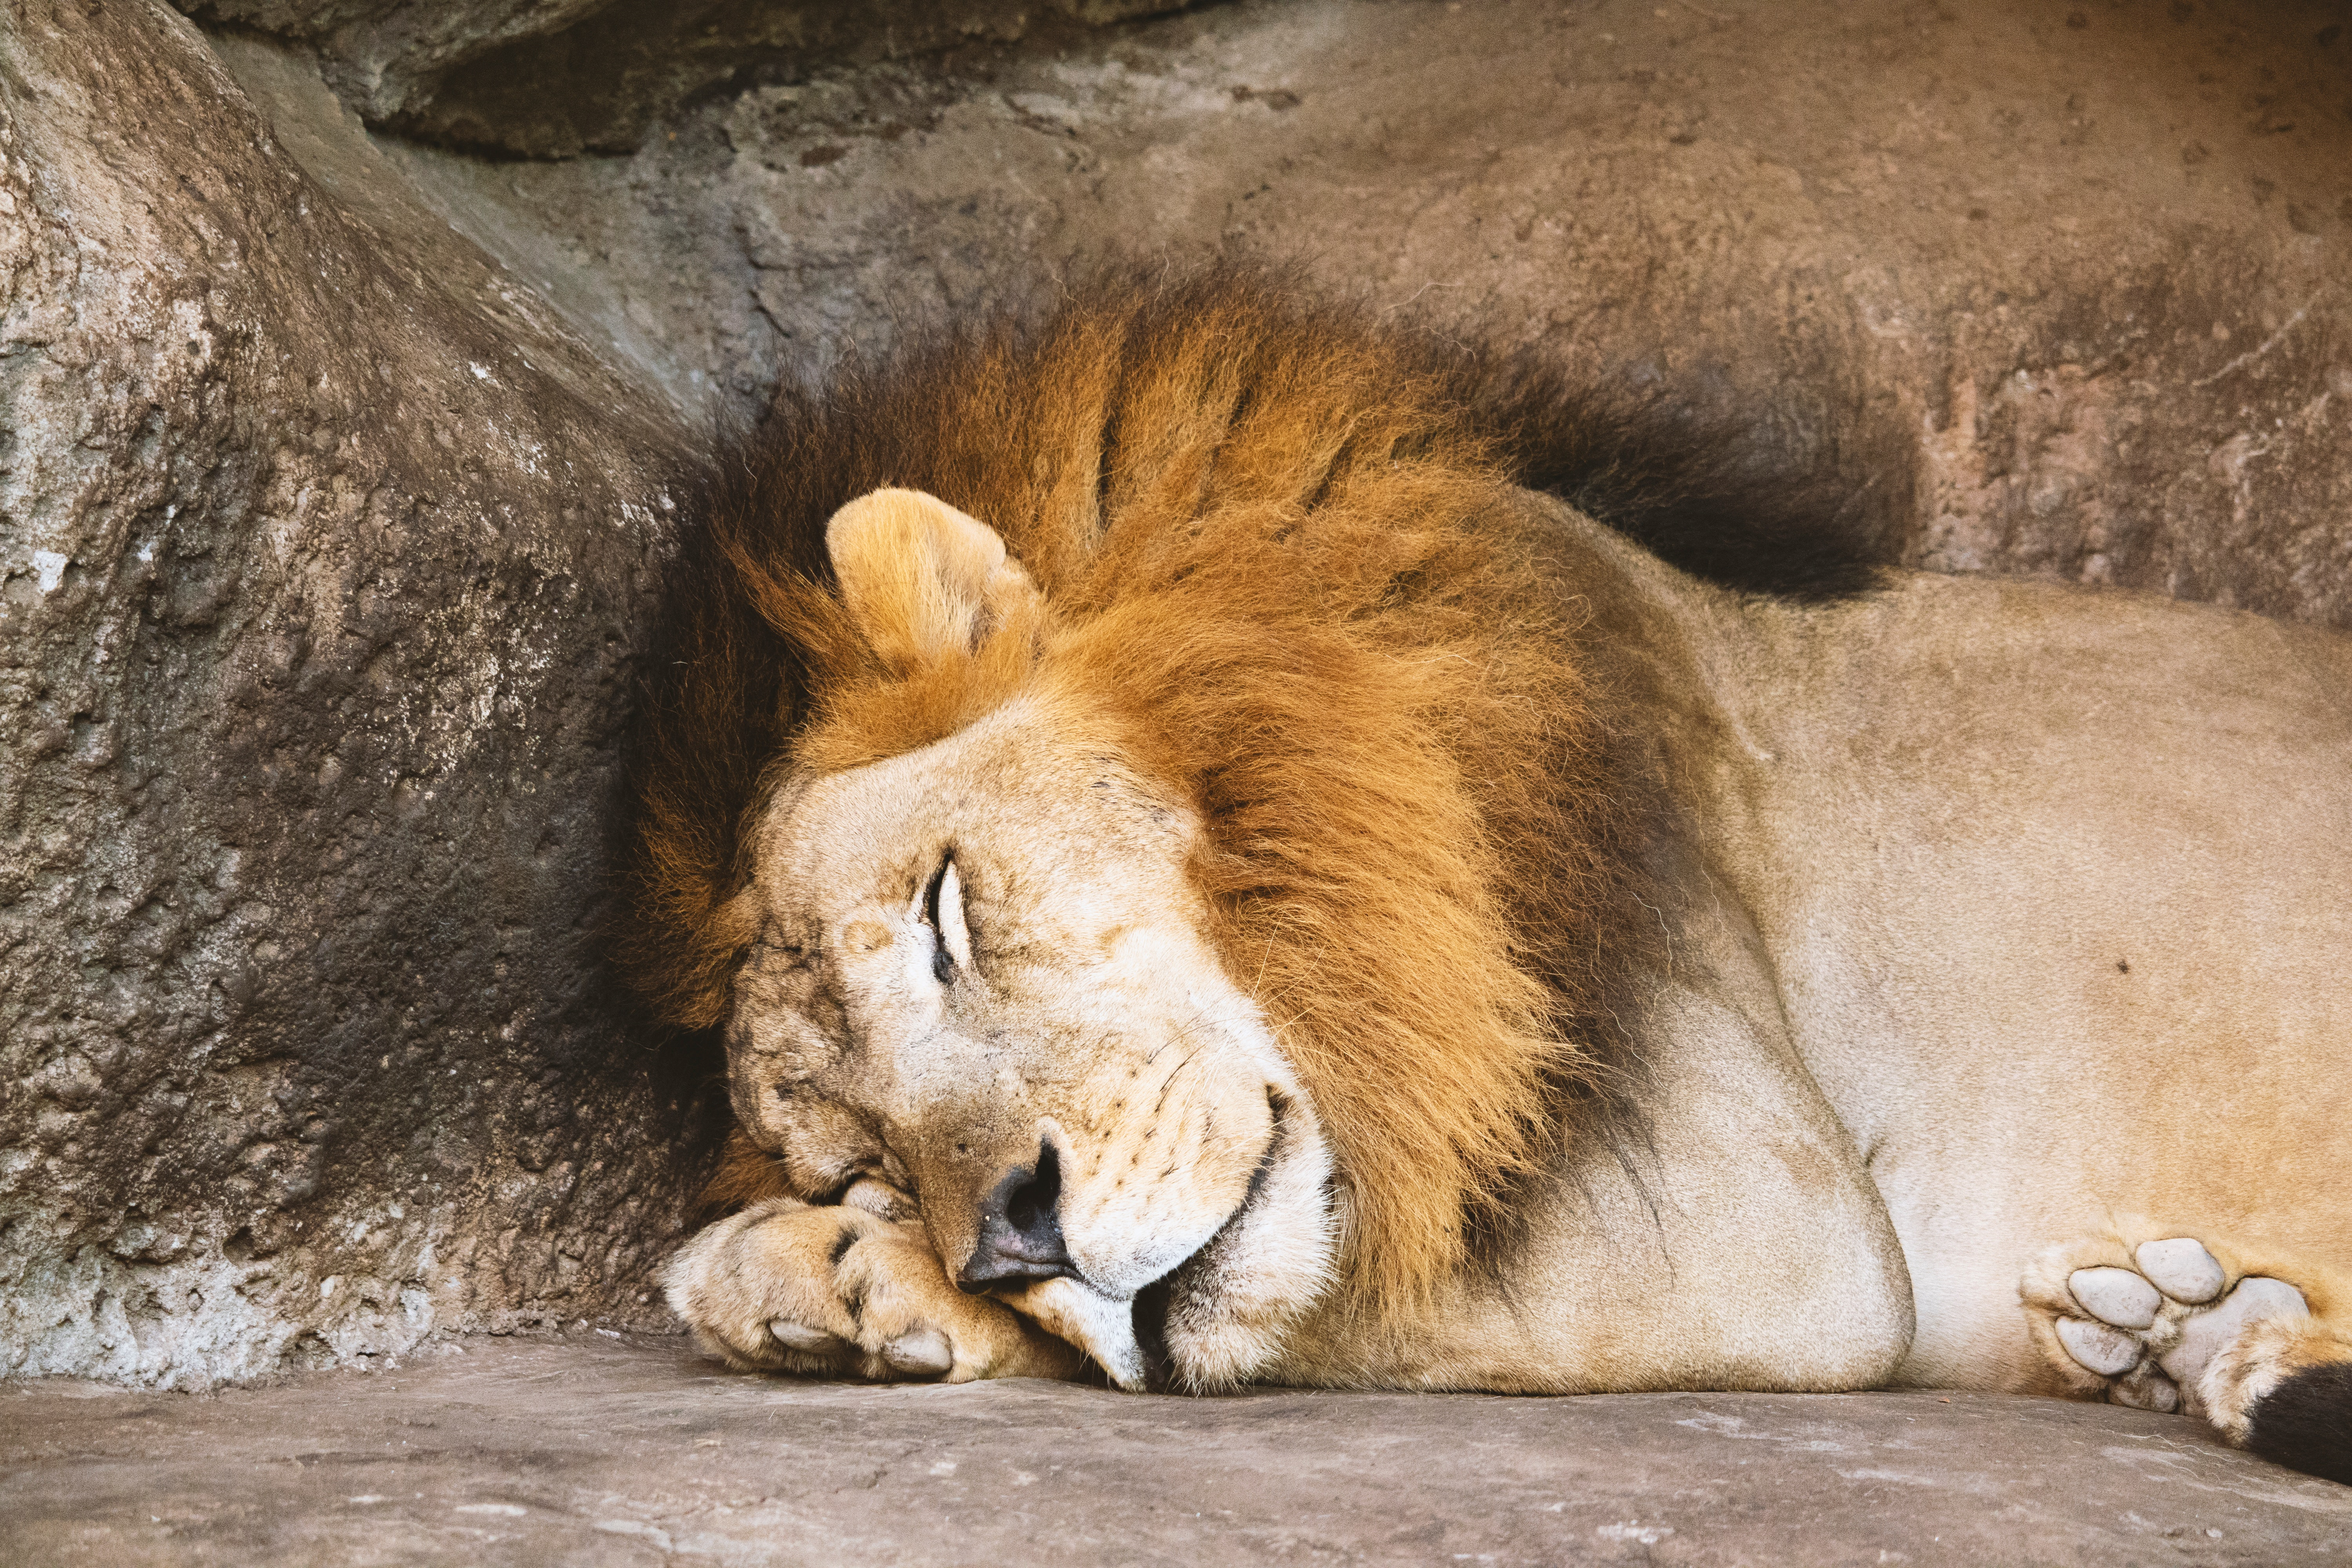 A lion sleeping beside a rock